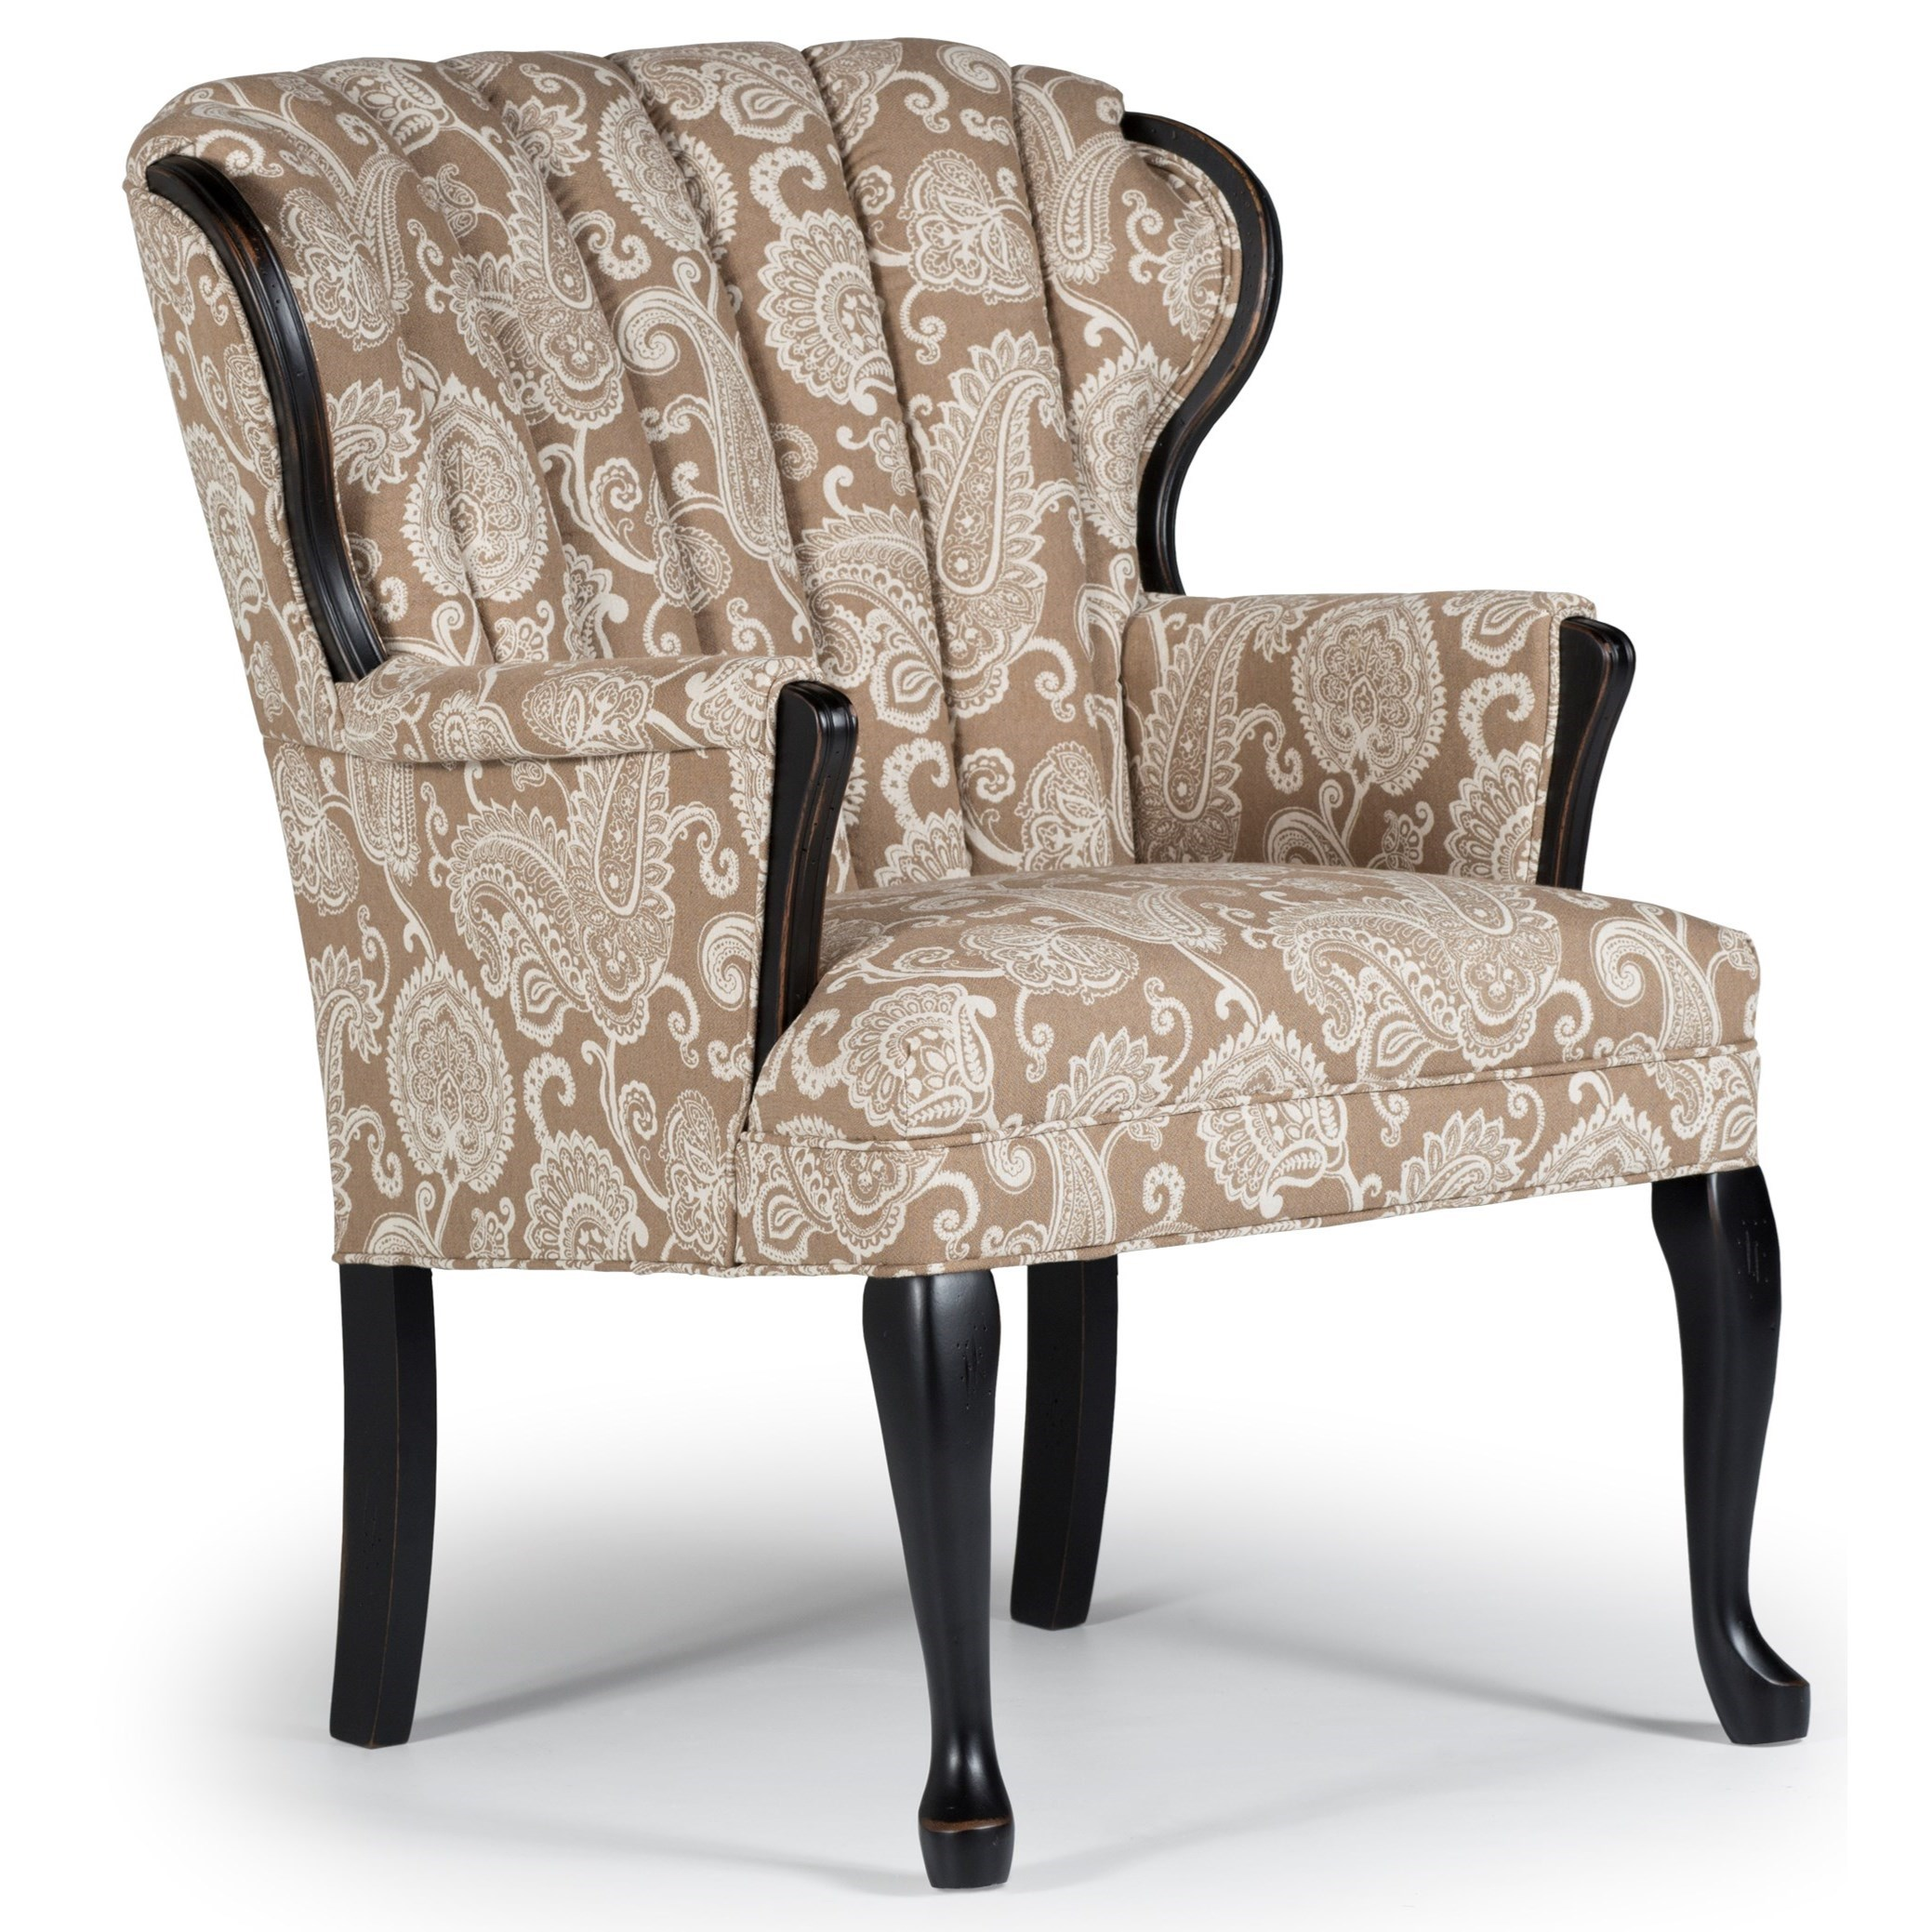 Best Home Furnishings Chairs - Accent Prudence Exposed Wood Accent Chair - Item Number: 0820